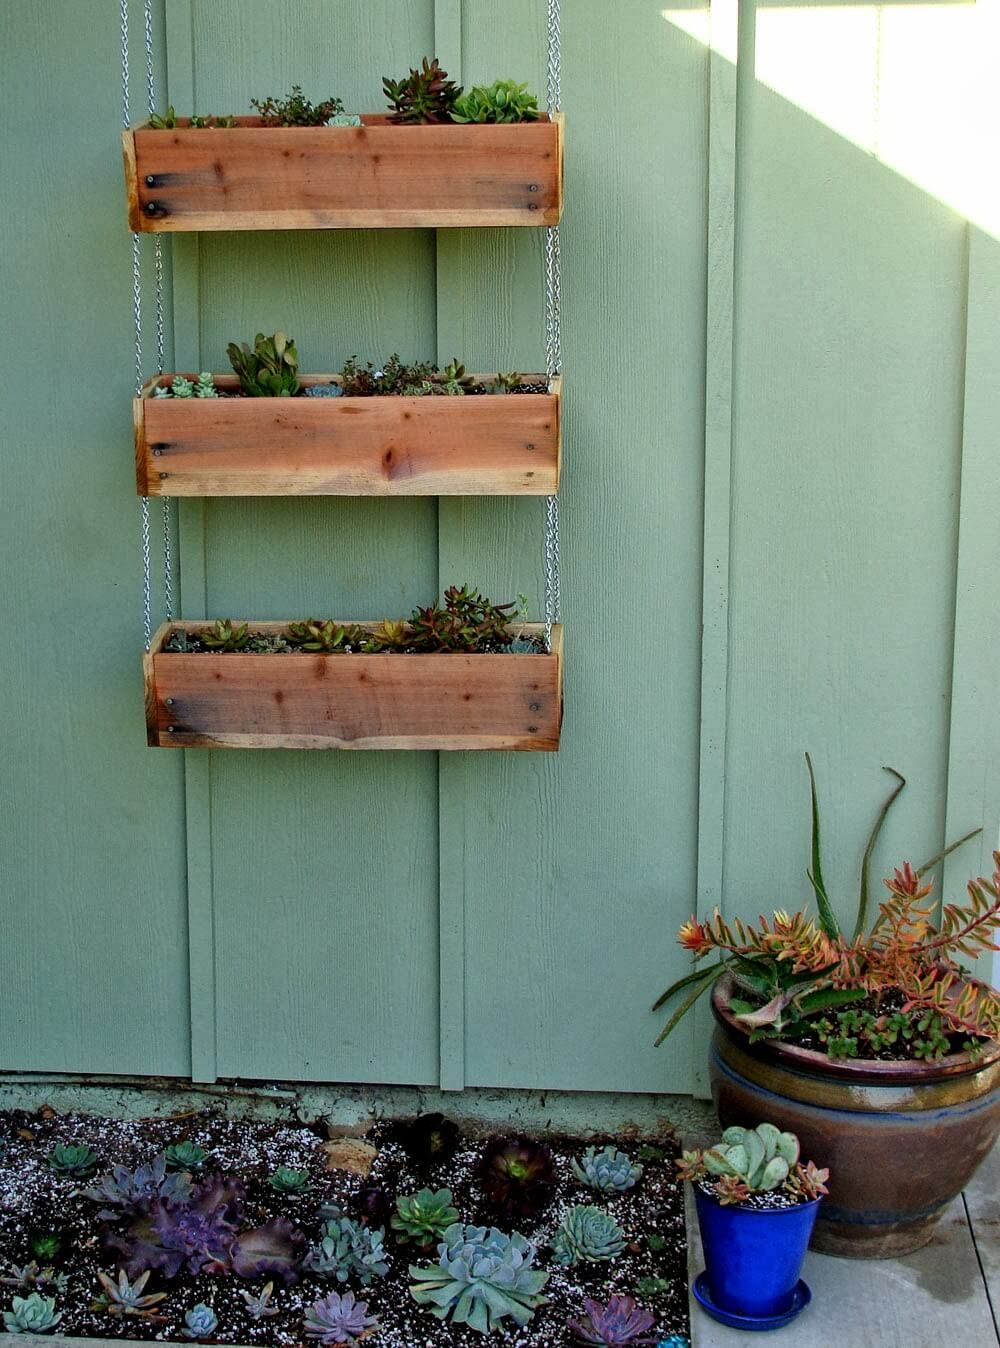 32 Diy Pallet And Wood Planter Box Ideas For Your Garden Diy Hanging Planter Hanging Planter Boxes Diy Wood Planters